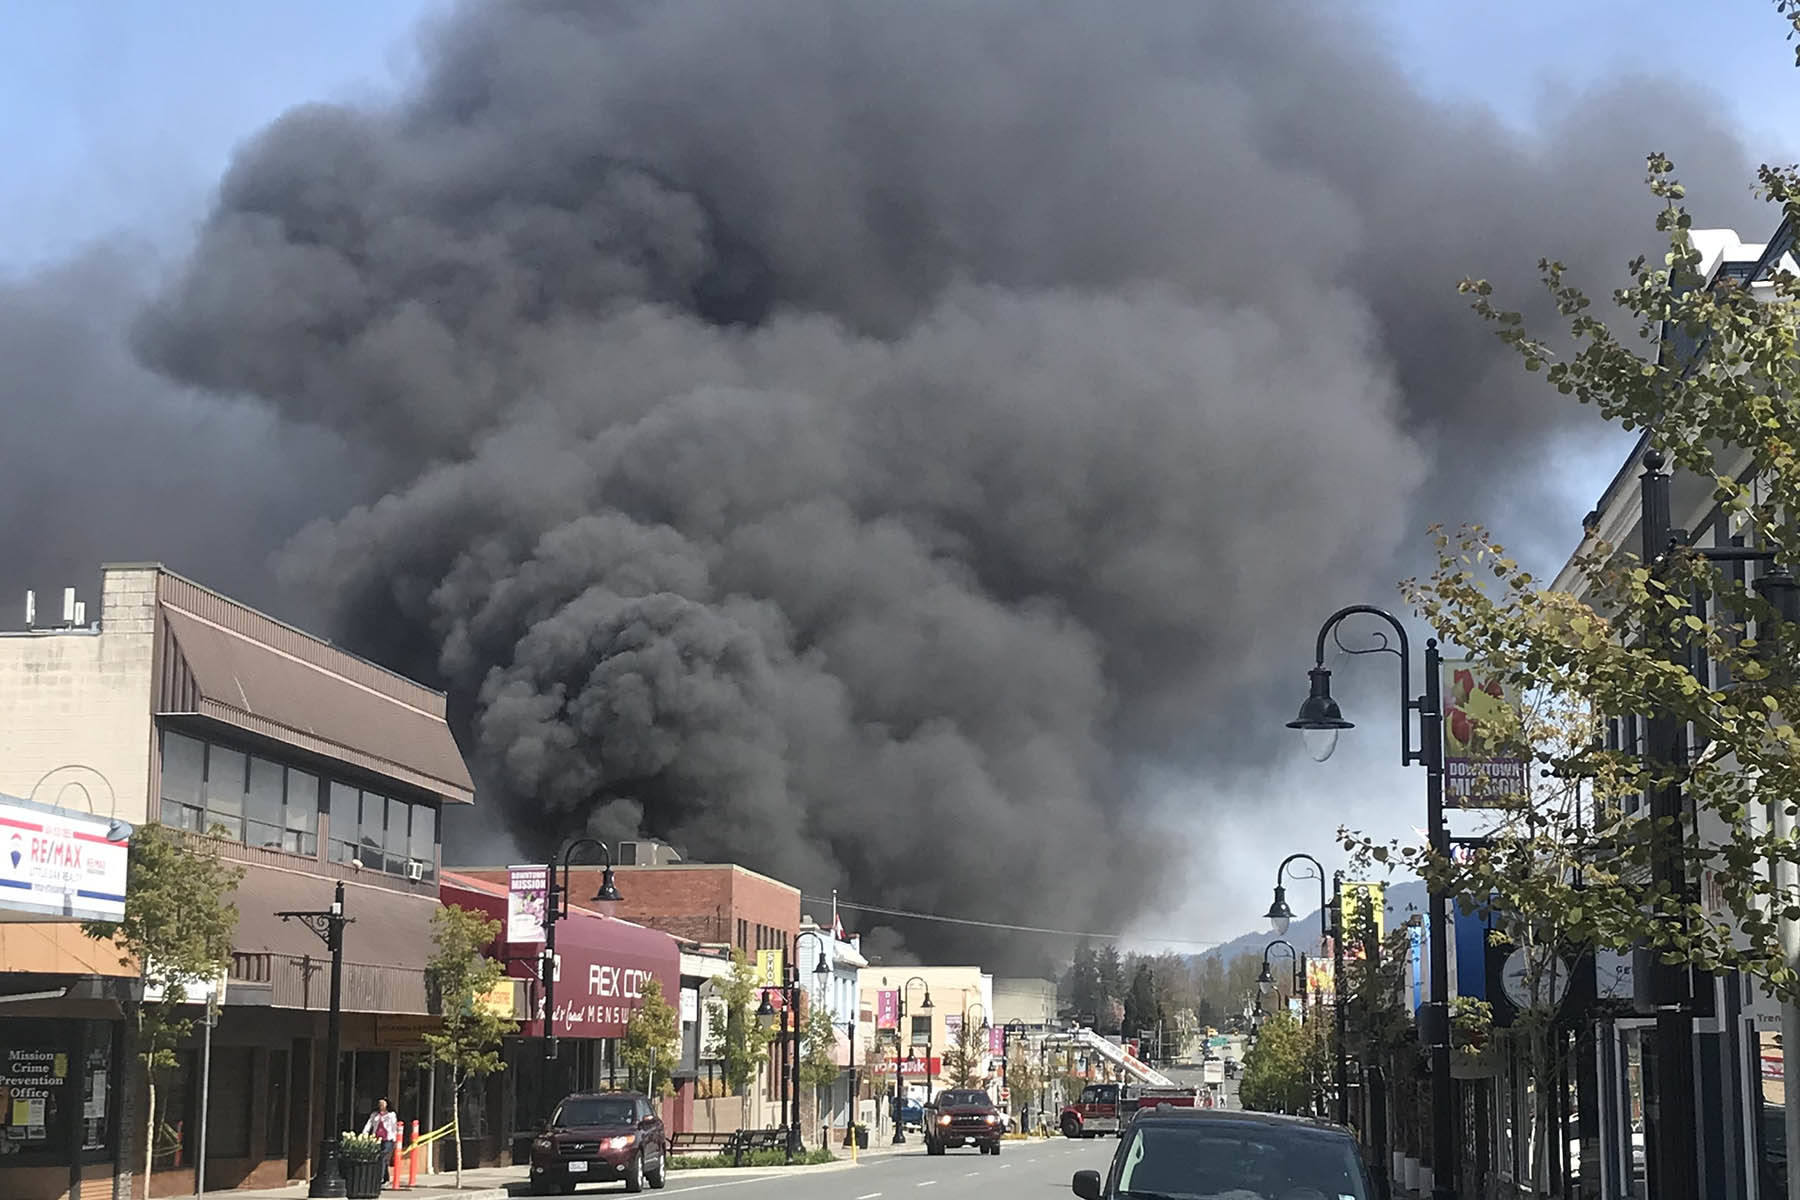 VIDEO: Firefighters battle business blaze in downtown core of Mission